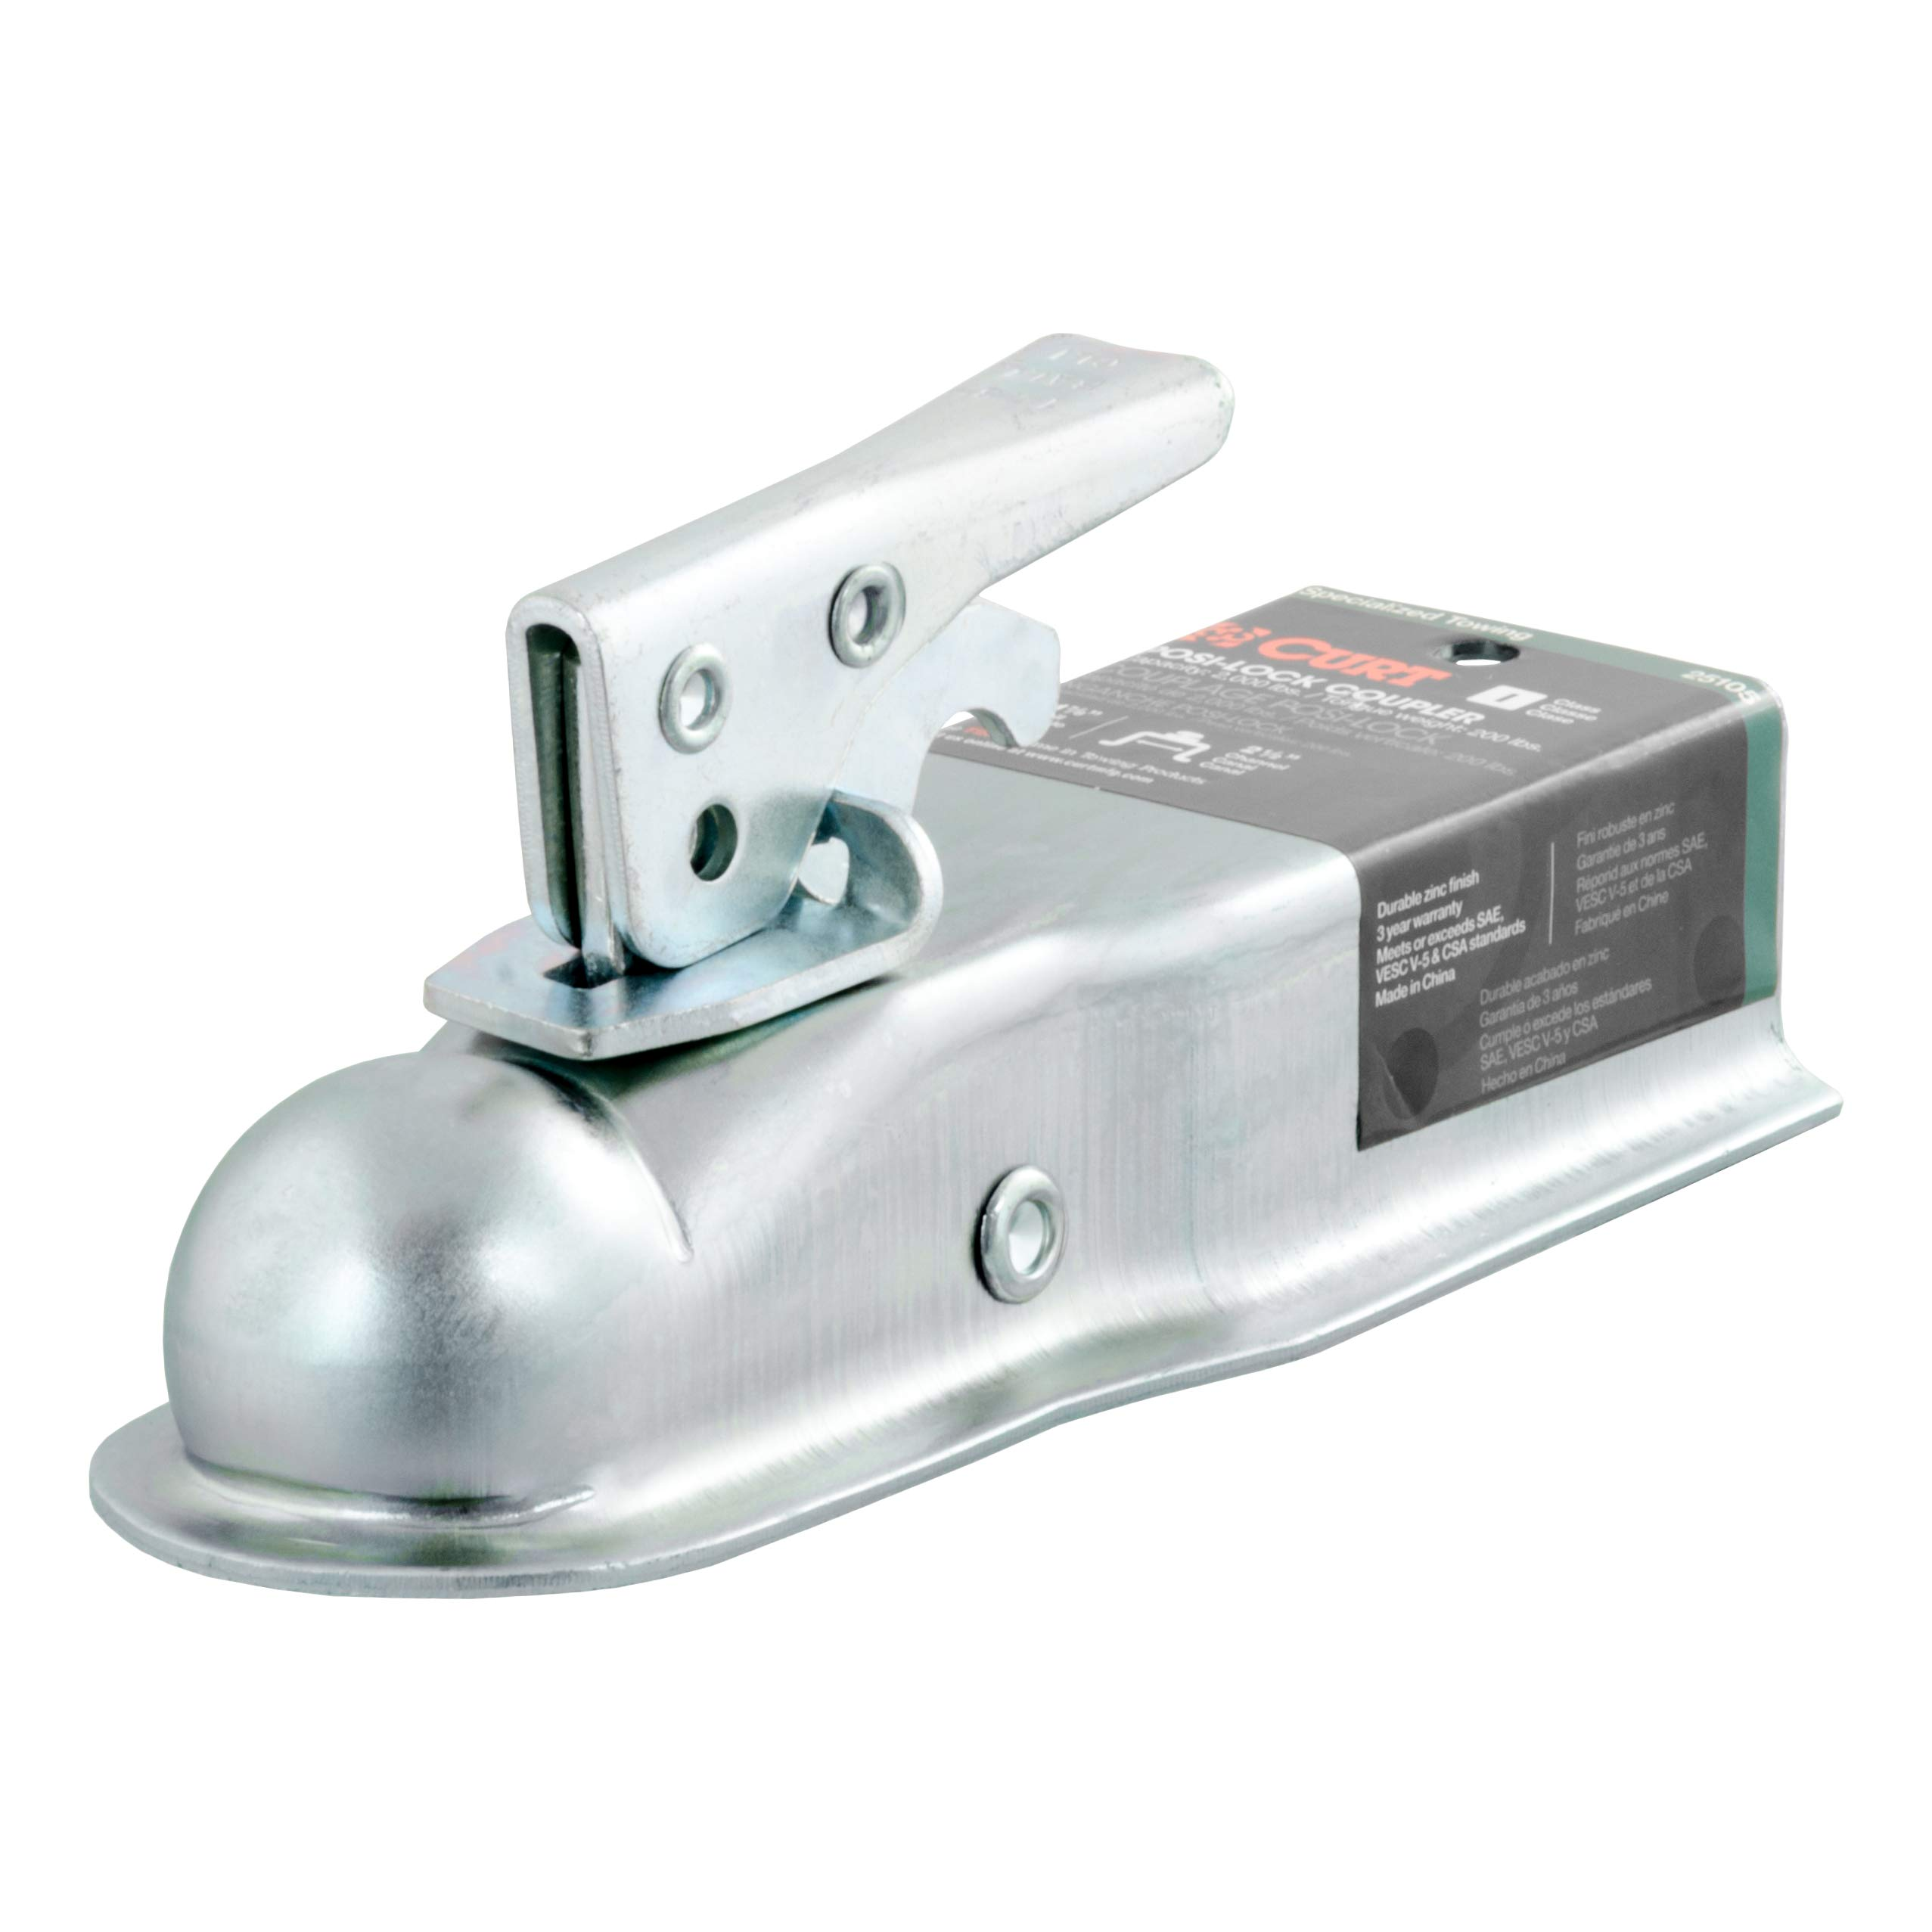 CURT 25105 Straight-Tongue Trailer Coupler for 2-1/2-Inch Channel Accepts 1-7/8-Inch Hitch Ball, 2,000 lbs by CURT